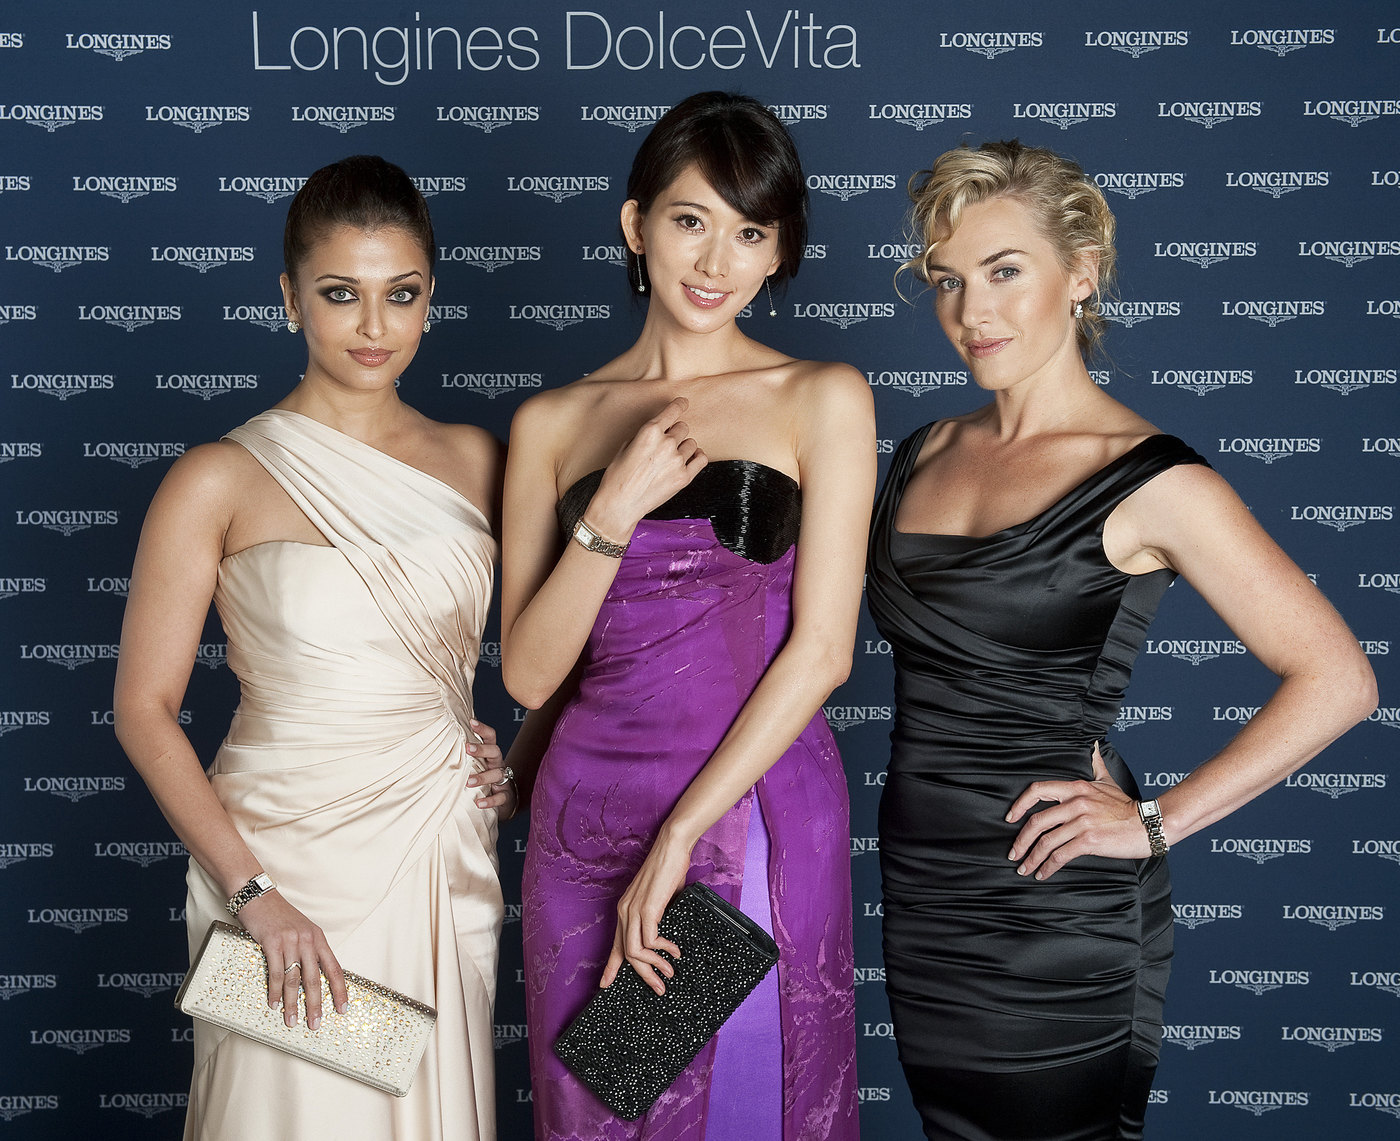 Longines Corporate Event: Kate Winslet, Aishwarya Rai Bachchan and Chi Ling Lin reveal the new additions to the Longines DolceVita collection 11